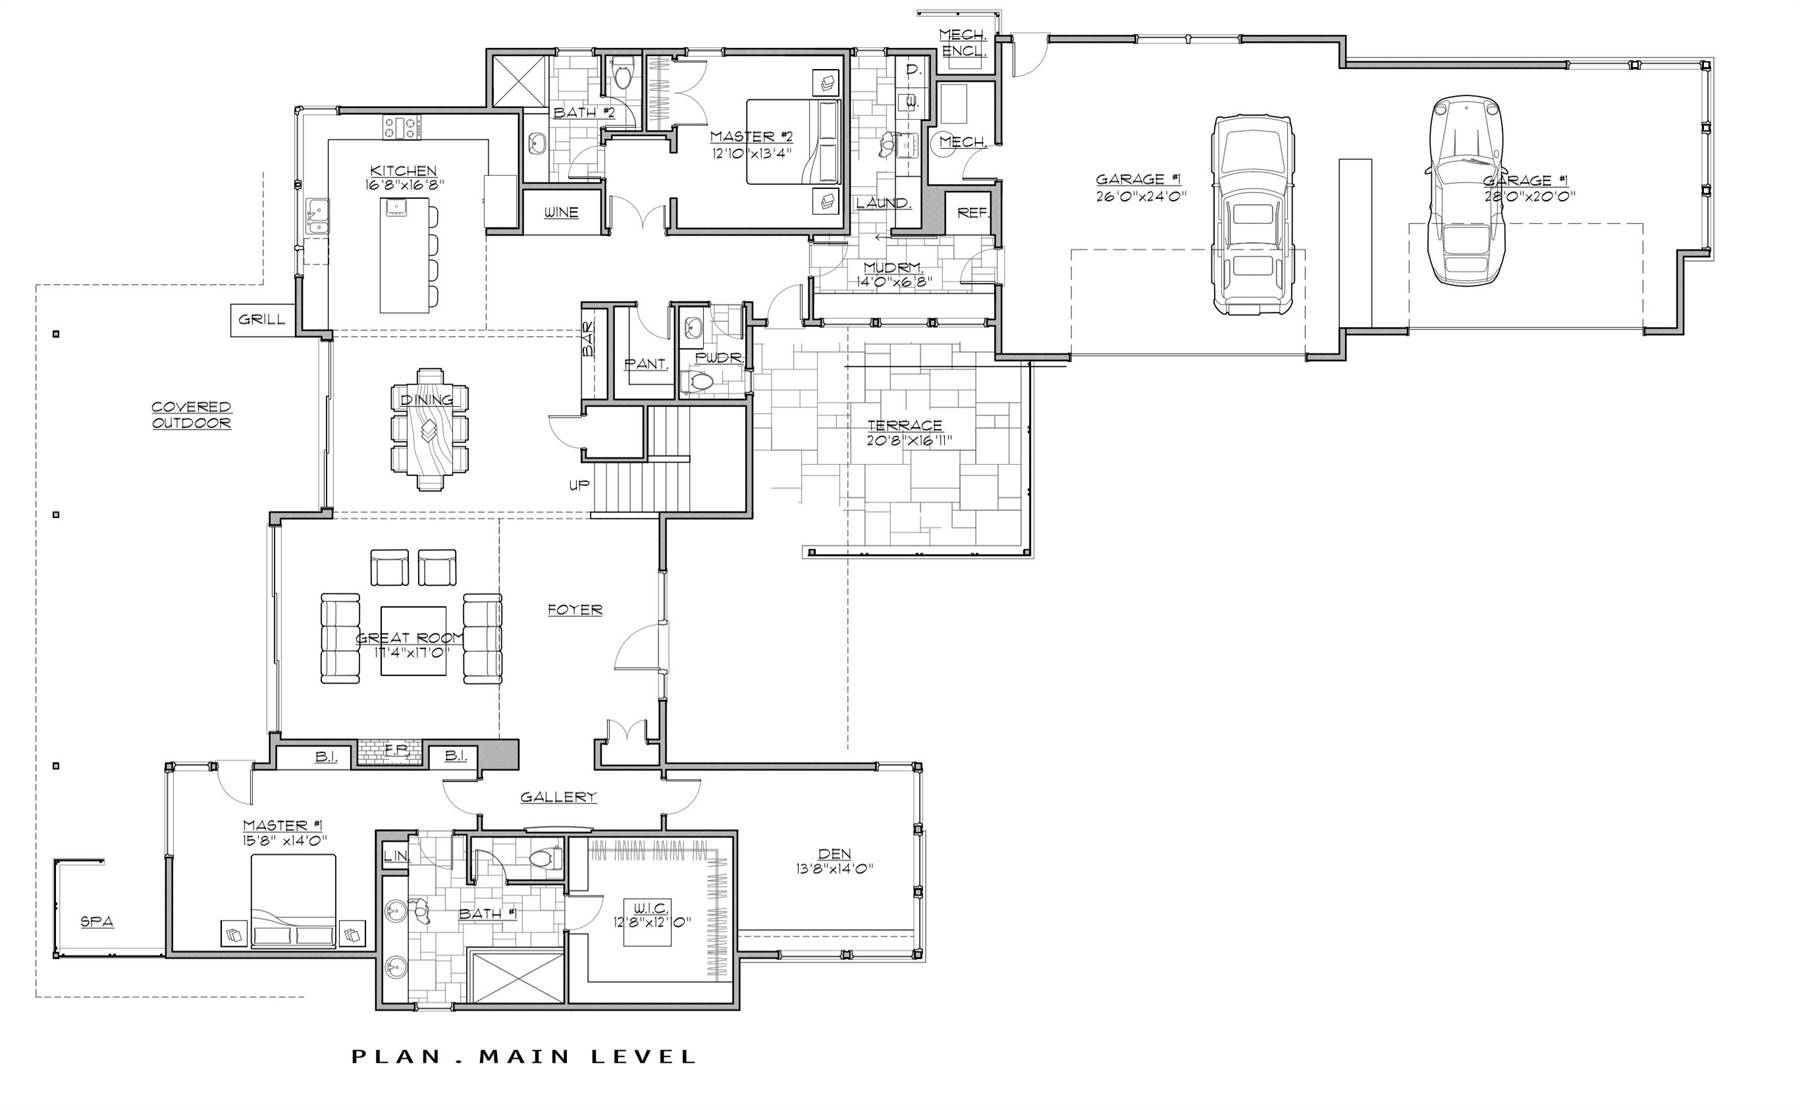 1st Floor Plan image of Featured House Plan: PBH - 7259